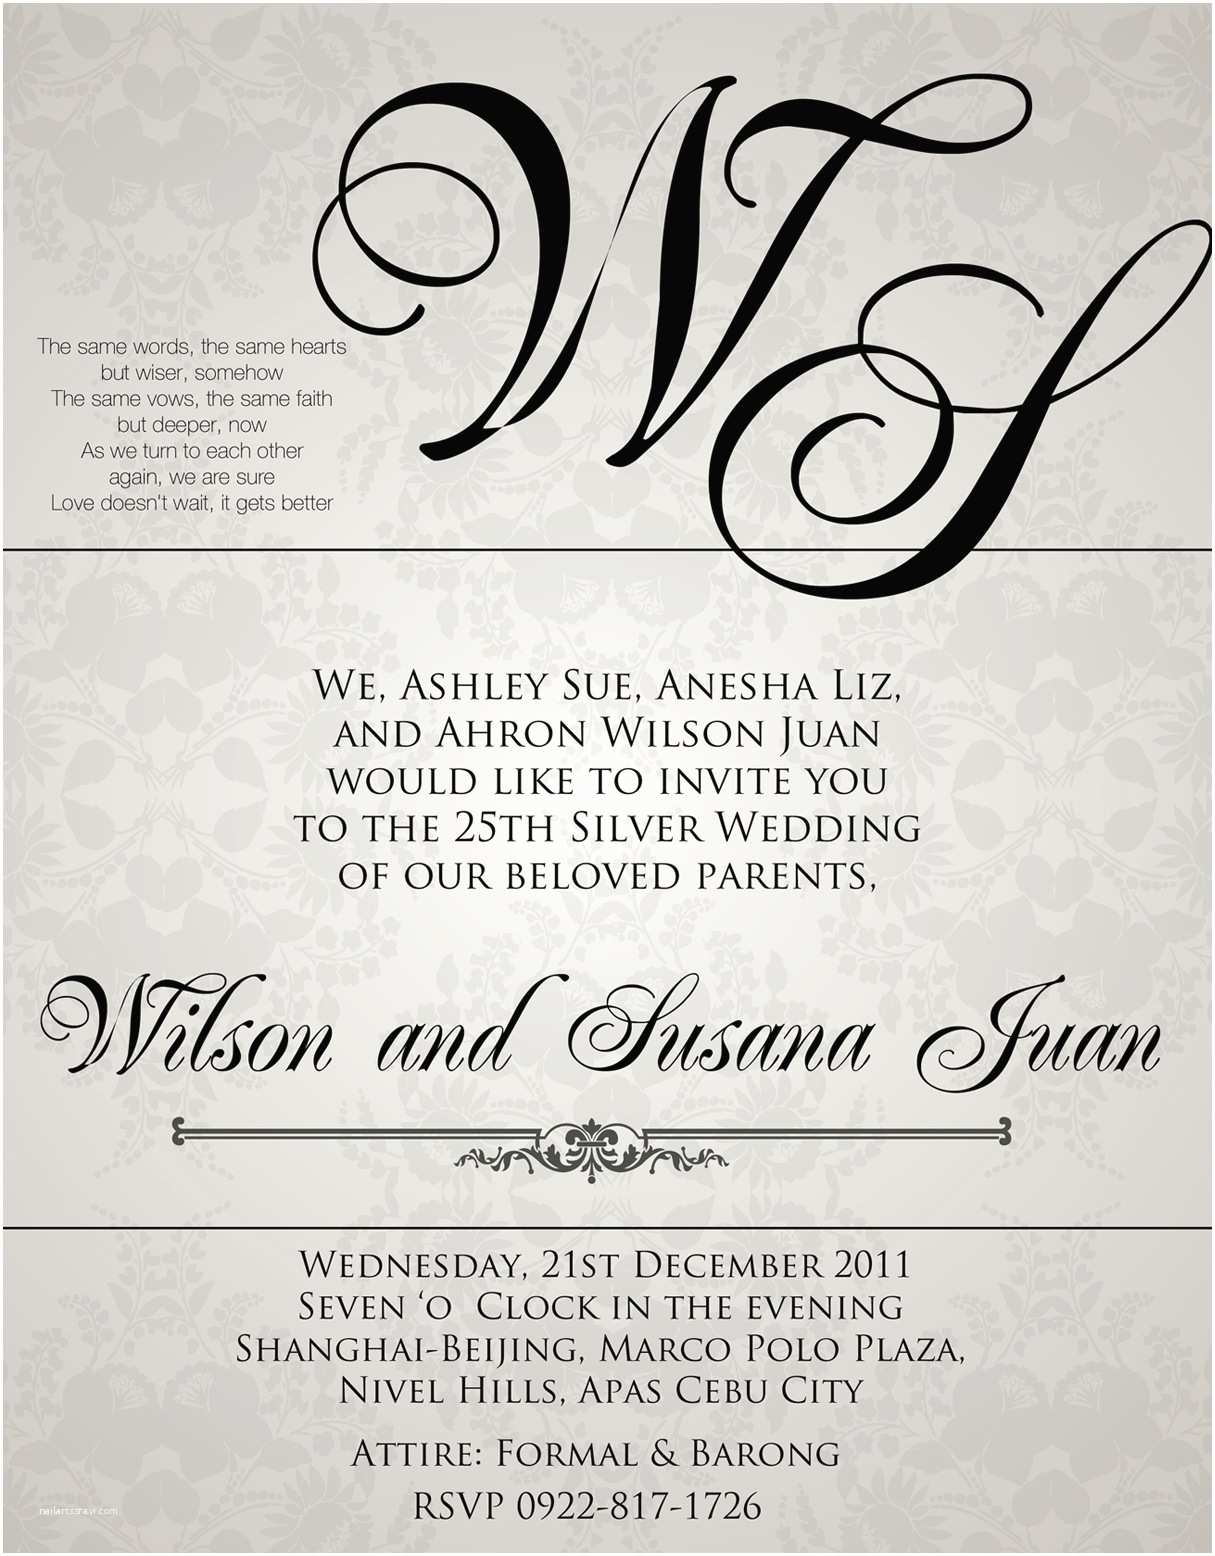 Wedding Invitation Rsvp Wording Samples Wedding Invitation Wording Sample — Criolla Brithday